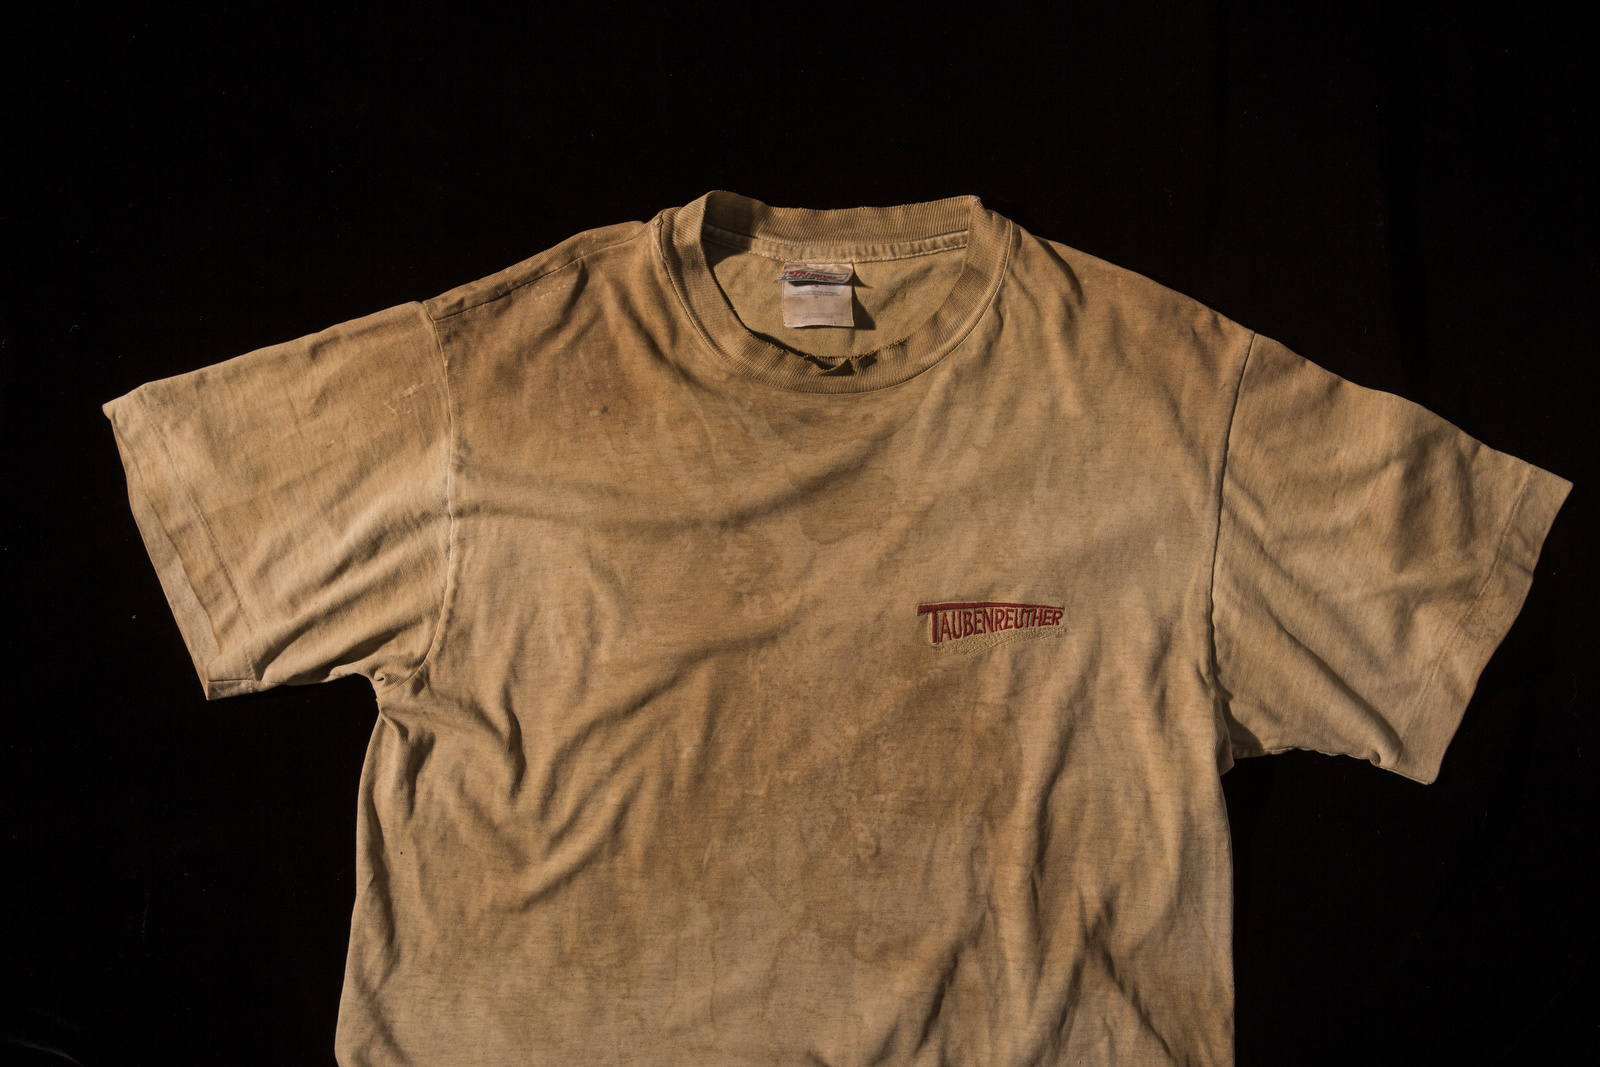 Harald Ickler was wearing this tshirt when he was taken hostage by al Al Qaeda affiliated terrorist group in the Saharah desert in 2003. The shirt was originally grey, but turned brown and was soon covered with sweat and stains as he wore it every day during his 54 day captivity. He never washed it, and even more than a decade later, the shirt still retained a distinct odor.